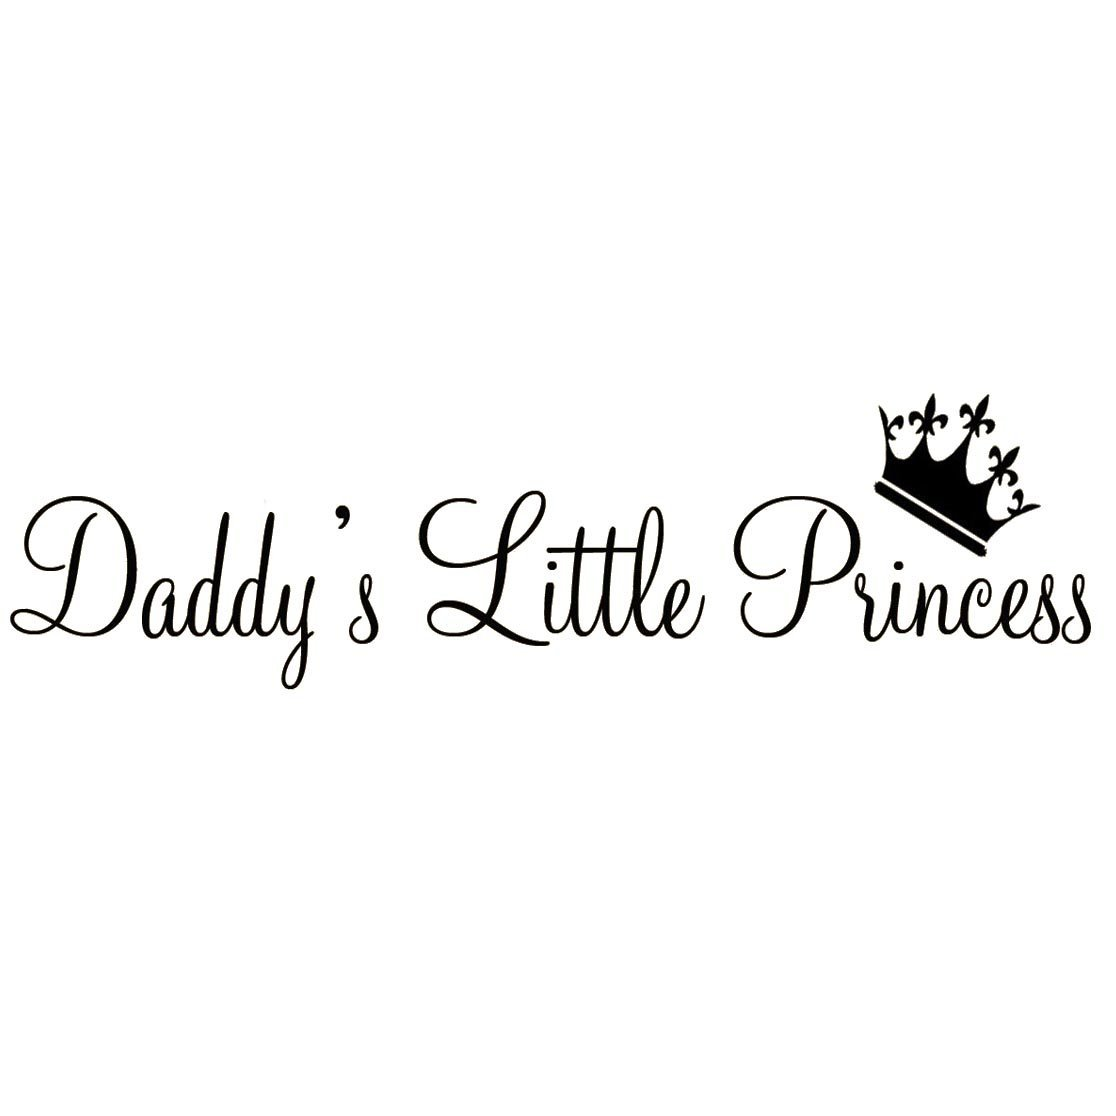 VWAQ Daddyu0027s Little Princess Nursery Wall Decals Cute Baby Quote Vinyl Wall Art Quotes Nursery Baby  sc 1 st  Walmart.com & VWAQ Daddyu0027s Little Princess Nursery Wall Decals Cute Baby Quote ...